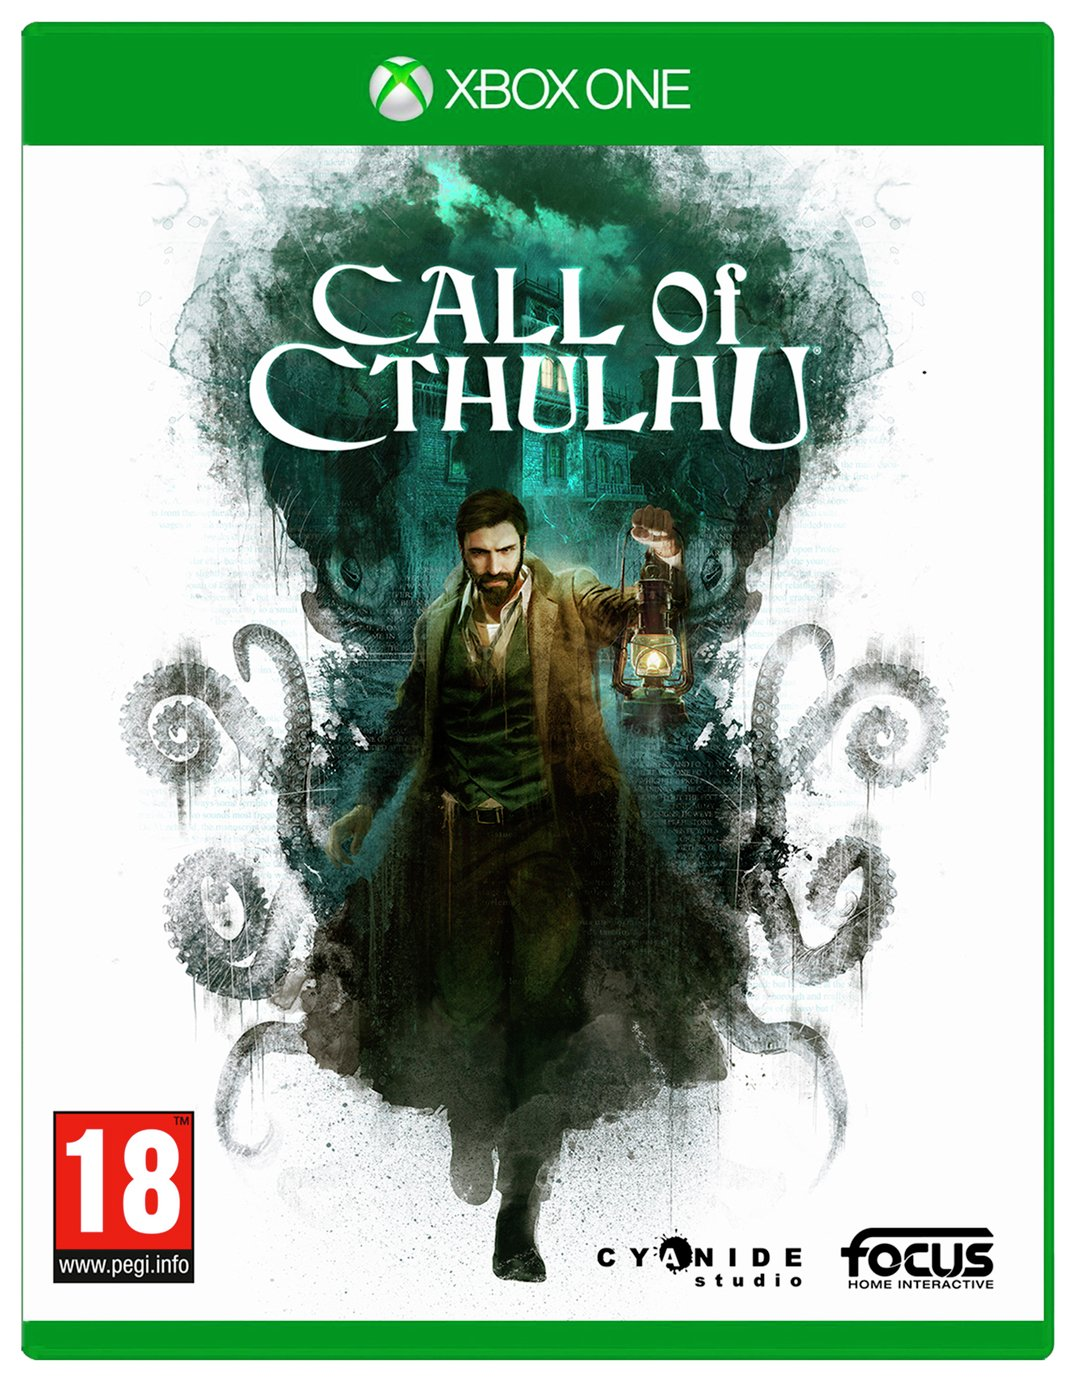 Call of Cthulhu Xbox One Game